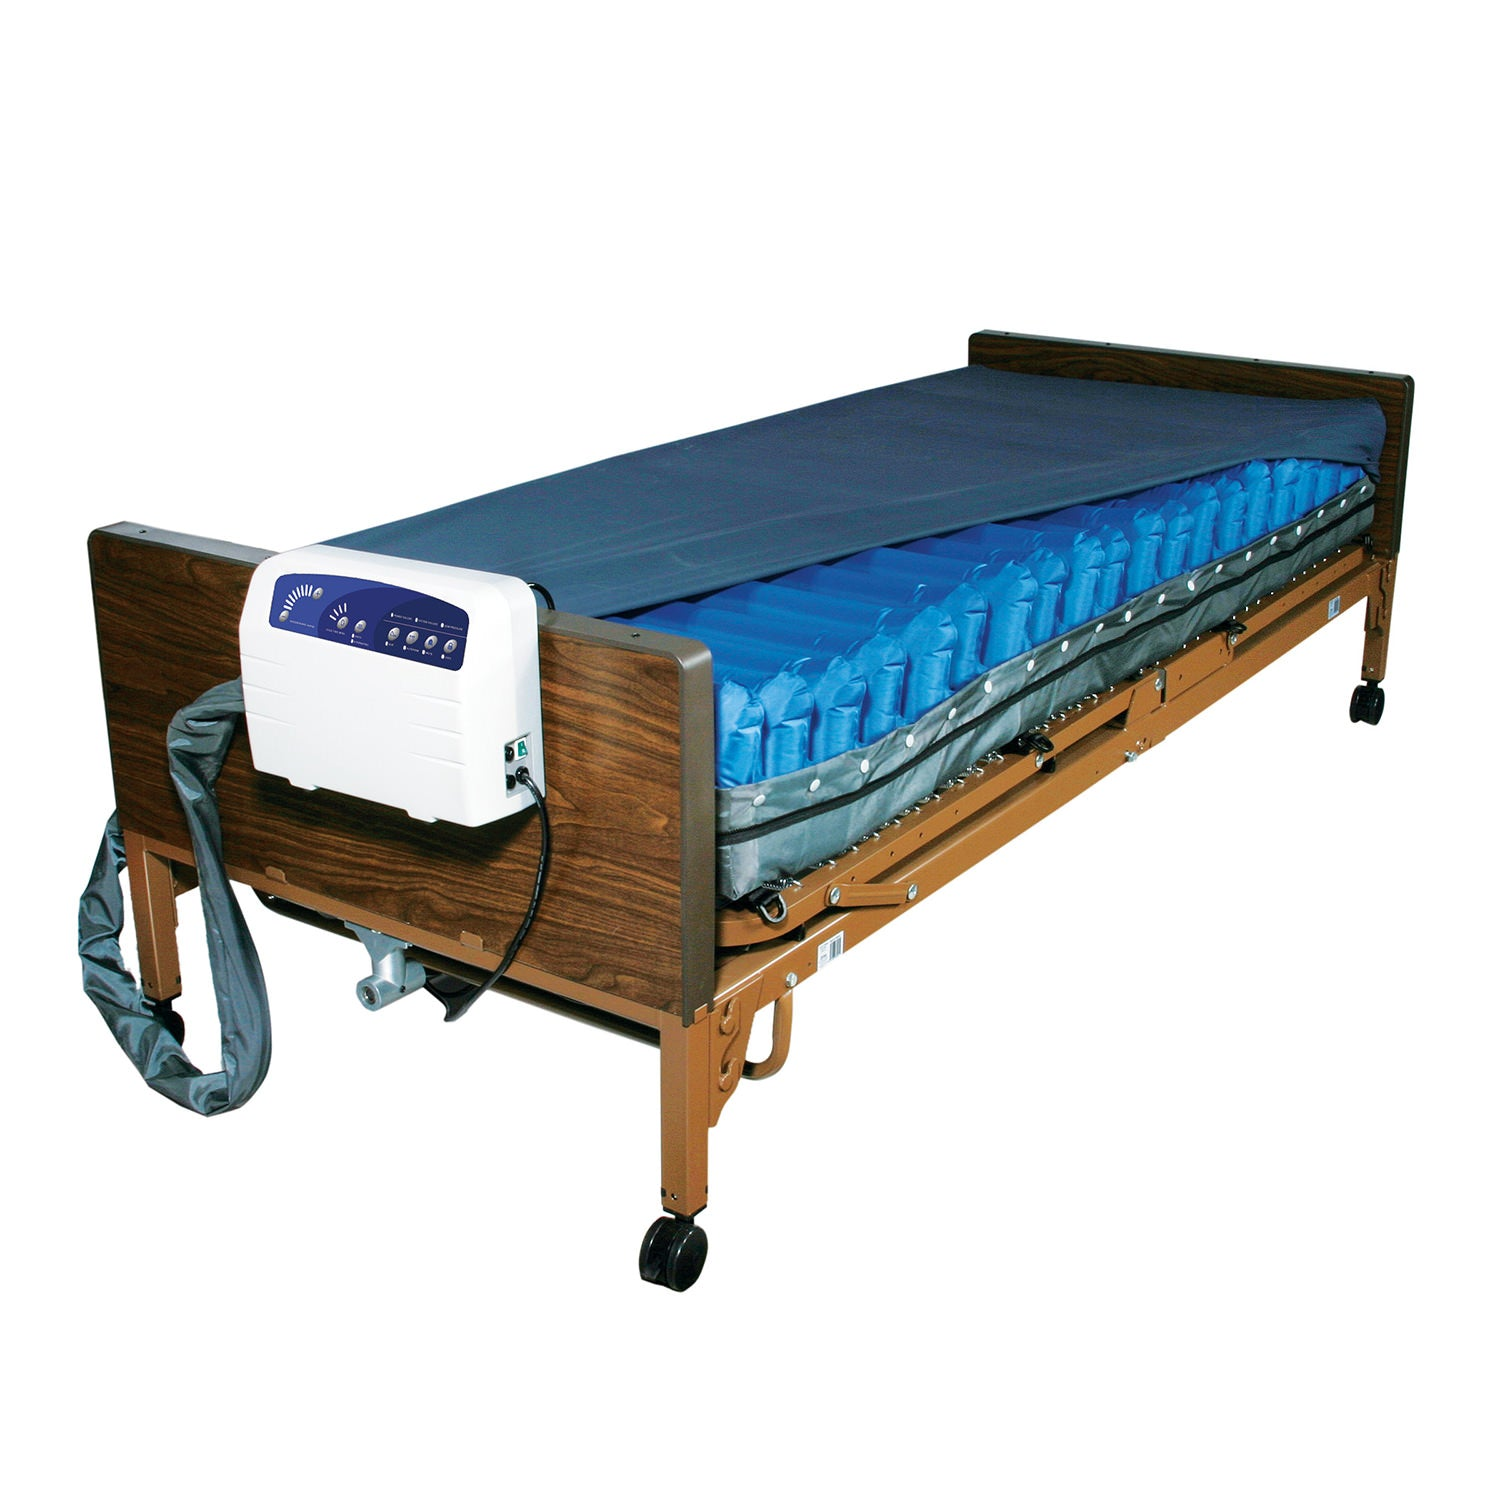 Med-Aire Plus Alternating Pressure Mattress Replacement System with Low Air Loss